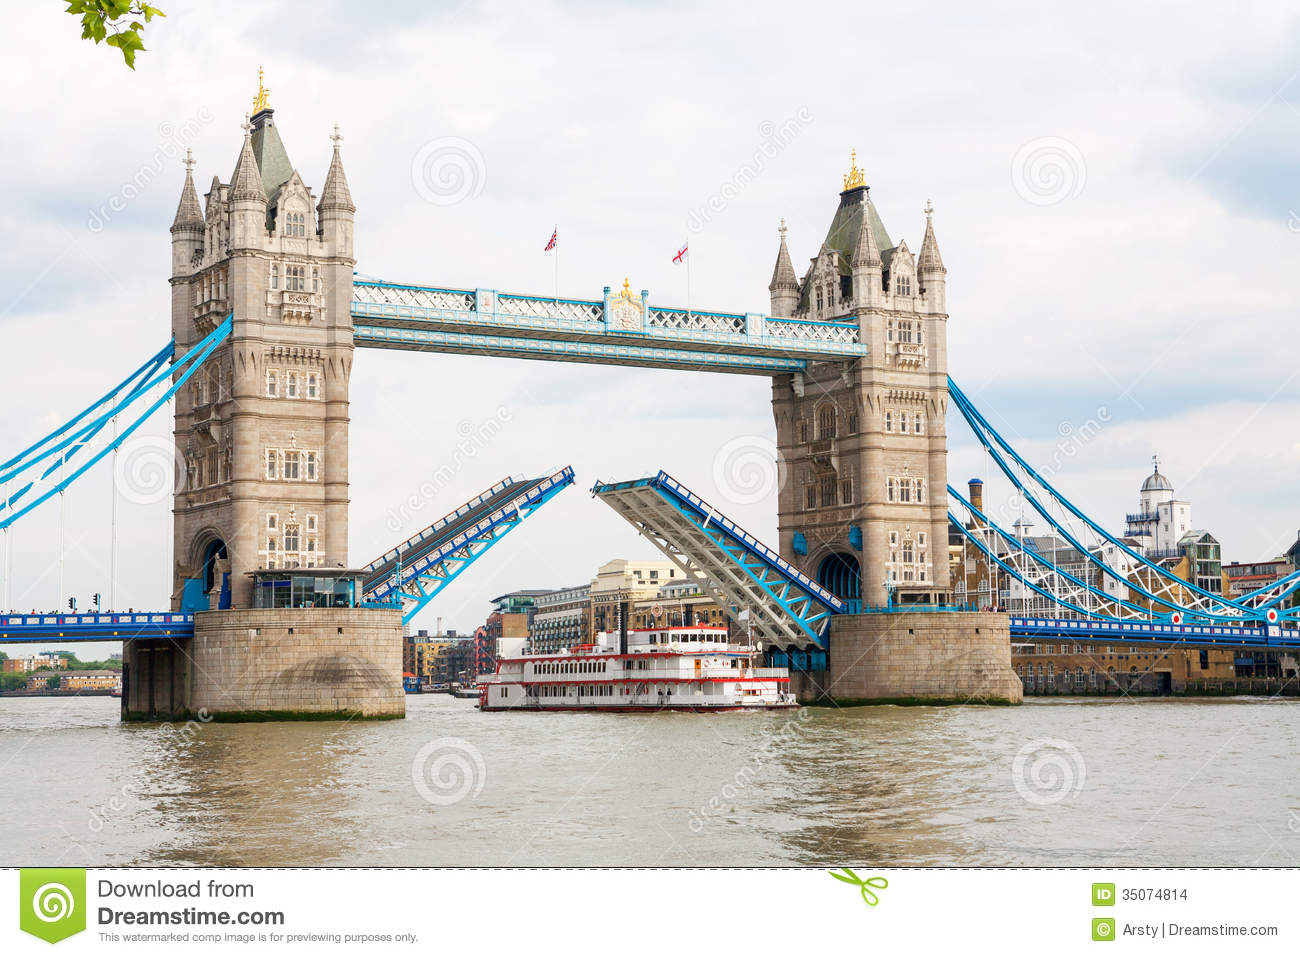 the tower bridge in england The tower of london, situated on the banks of the mighty river thames, is also known as her majesty's royal palace and fortress.